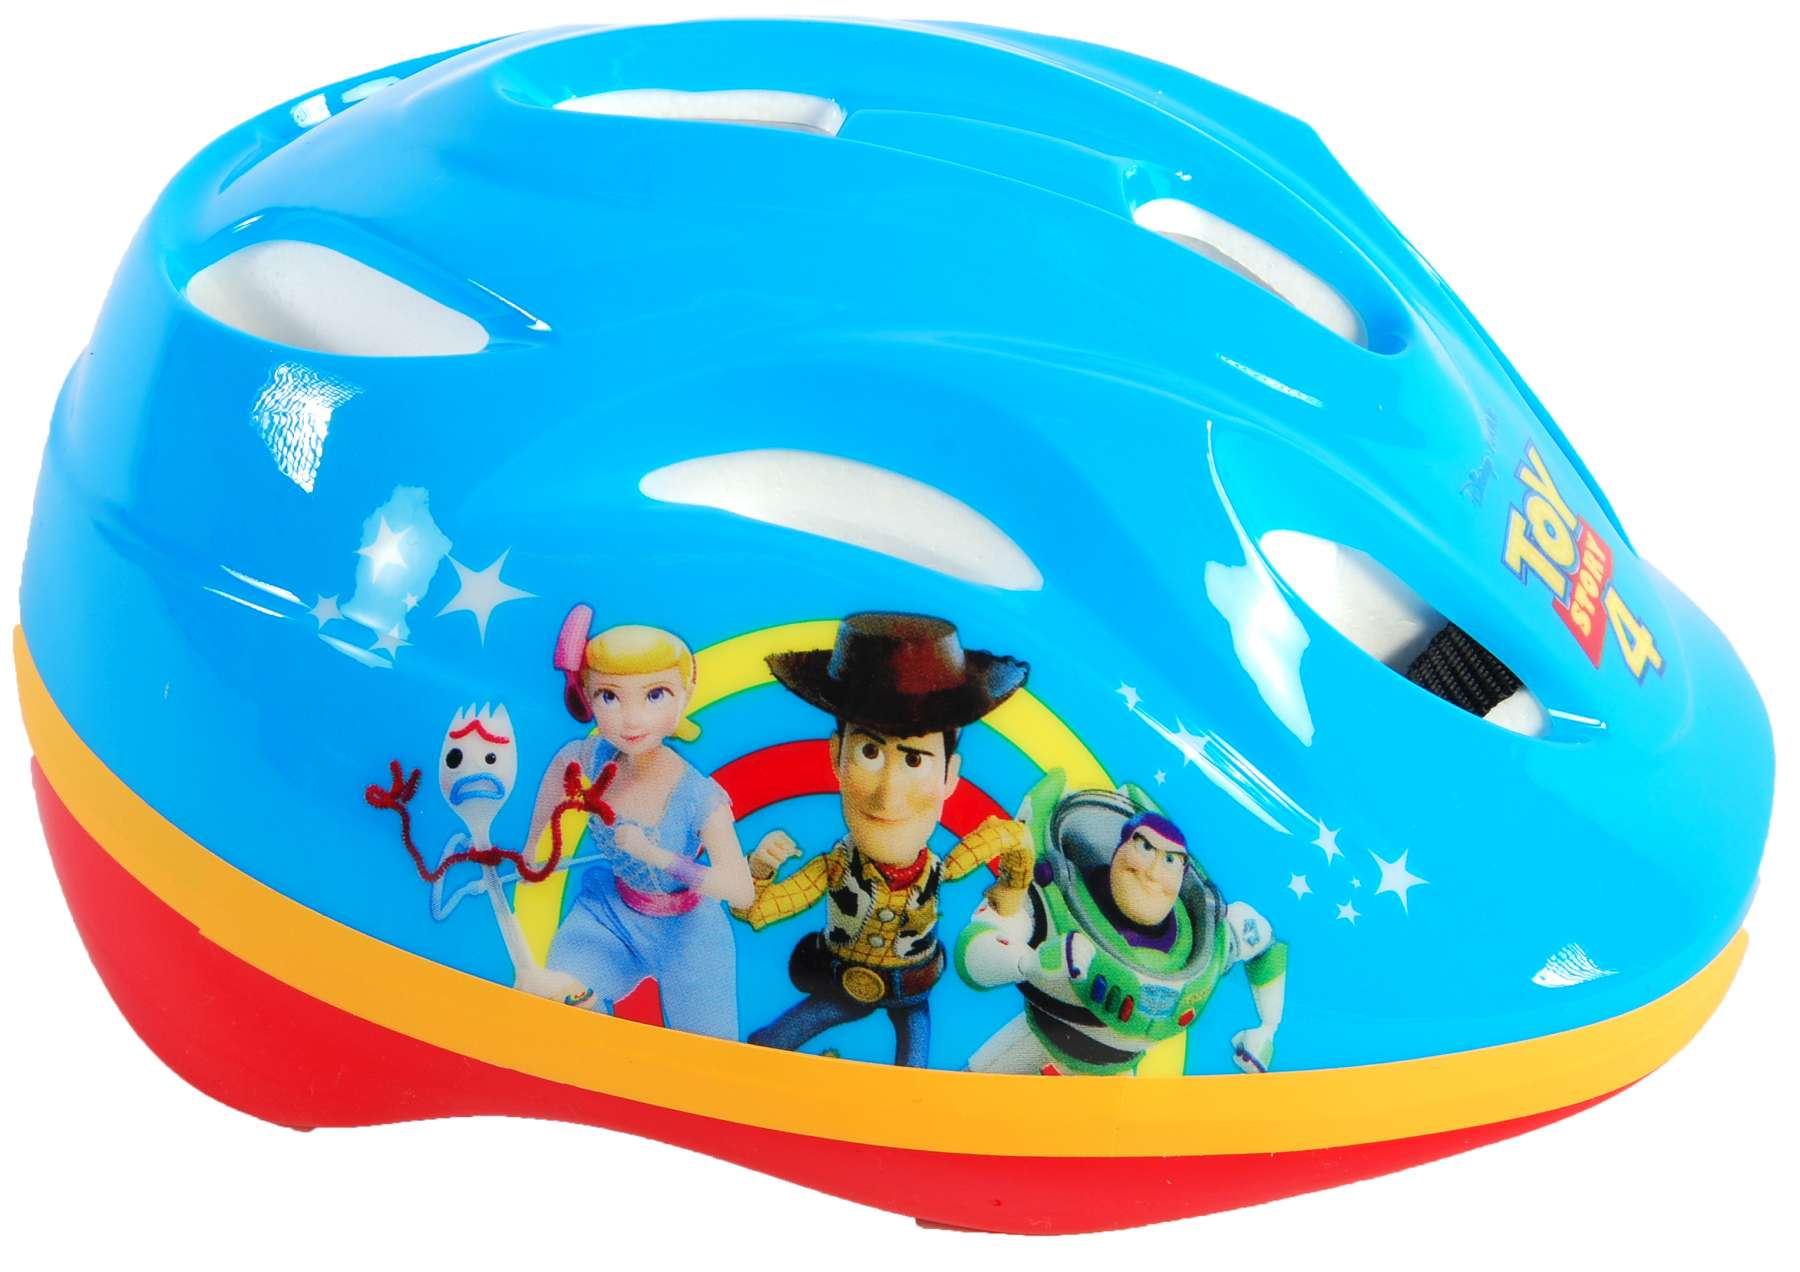 casco toy story 4 bicicleta